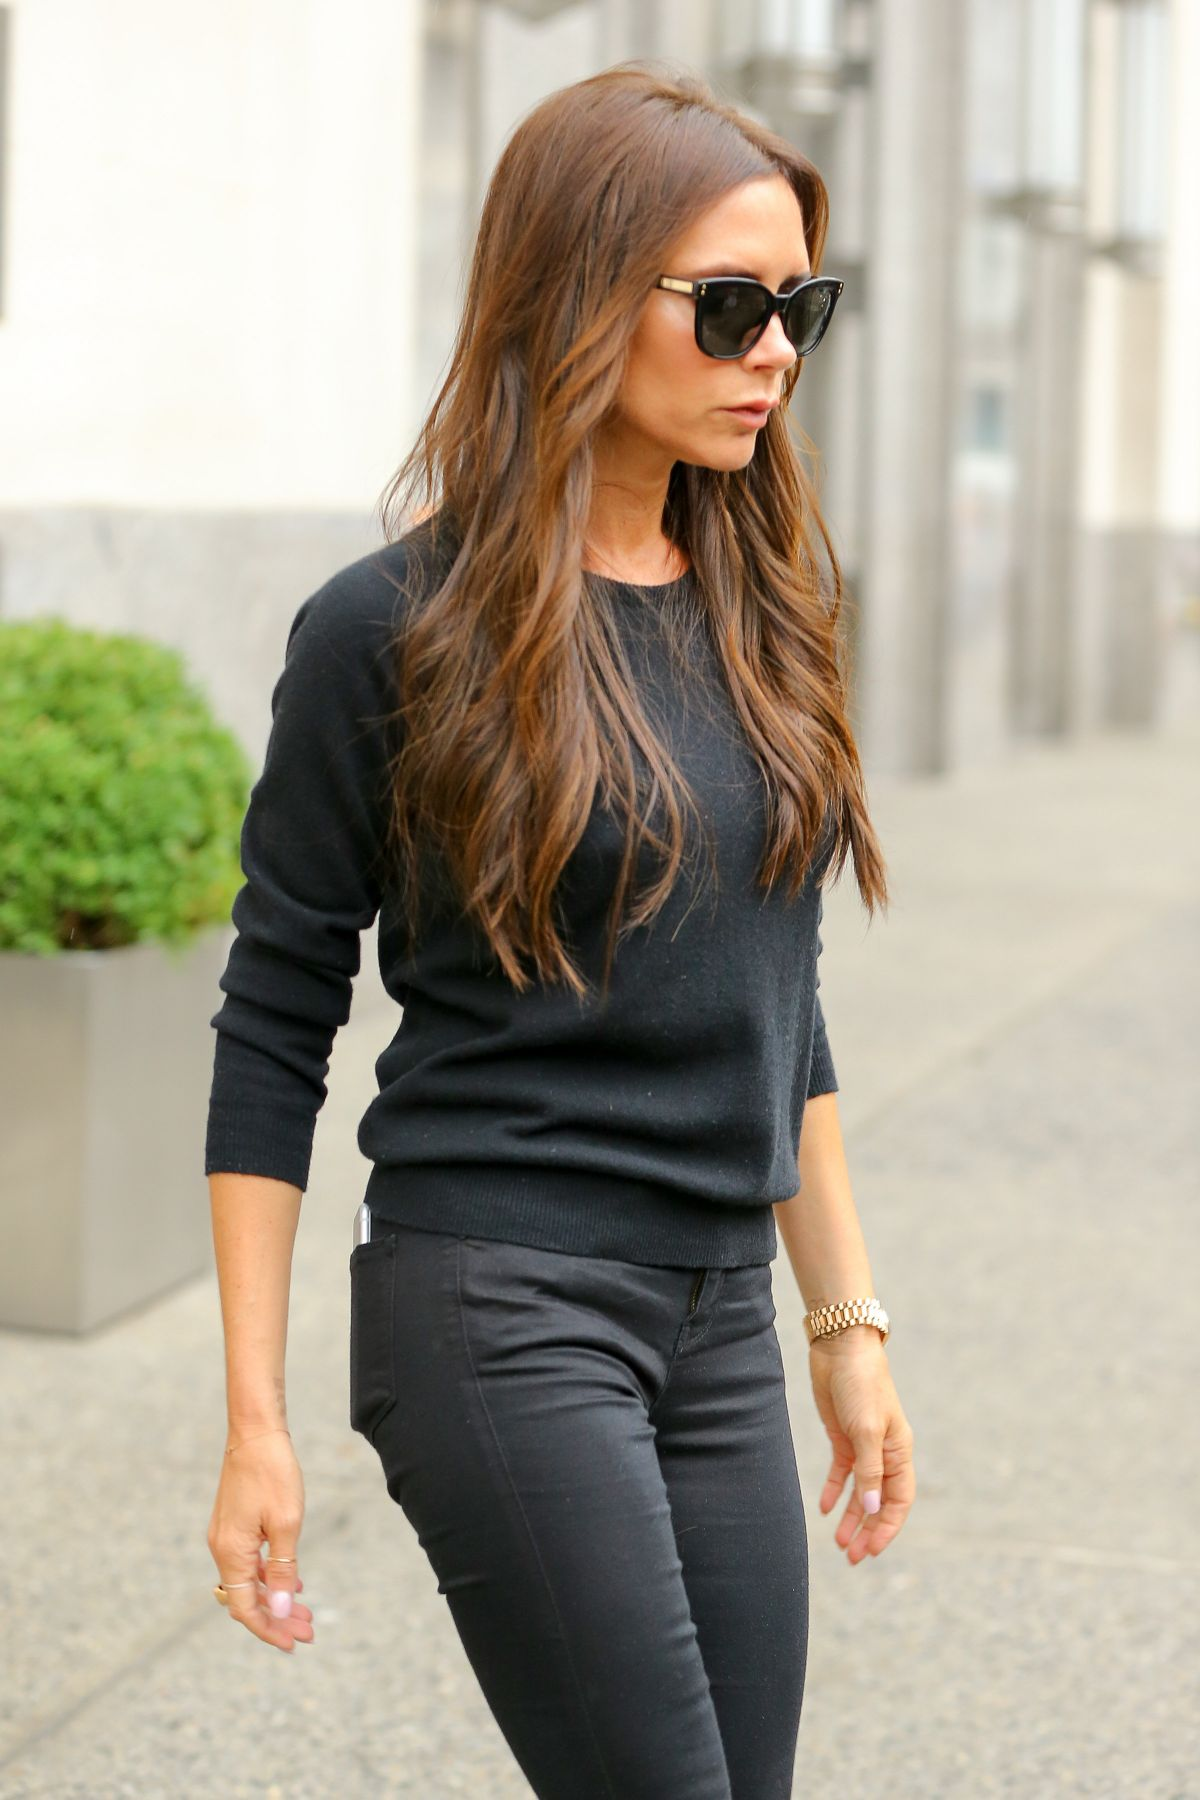 VICTORIA BECKHAM Out and About New York 09/10/2015 - HawtCelebs ... Victoria Beckham